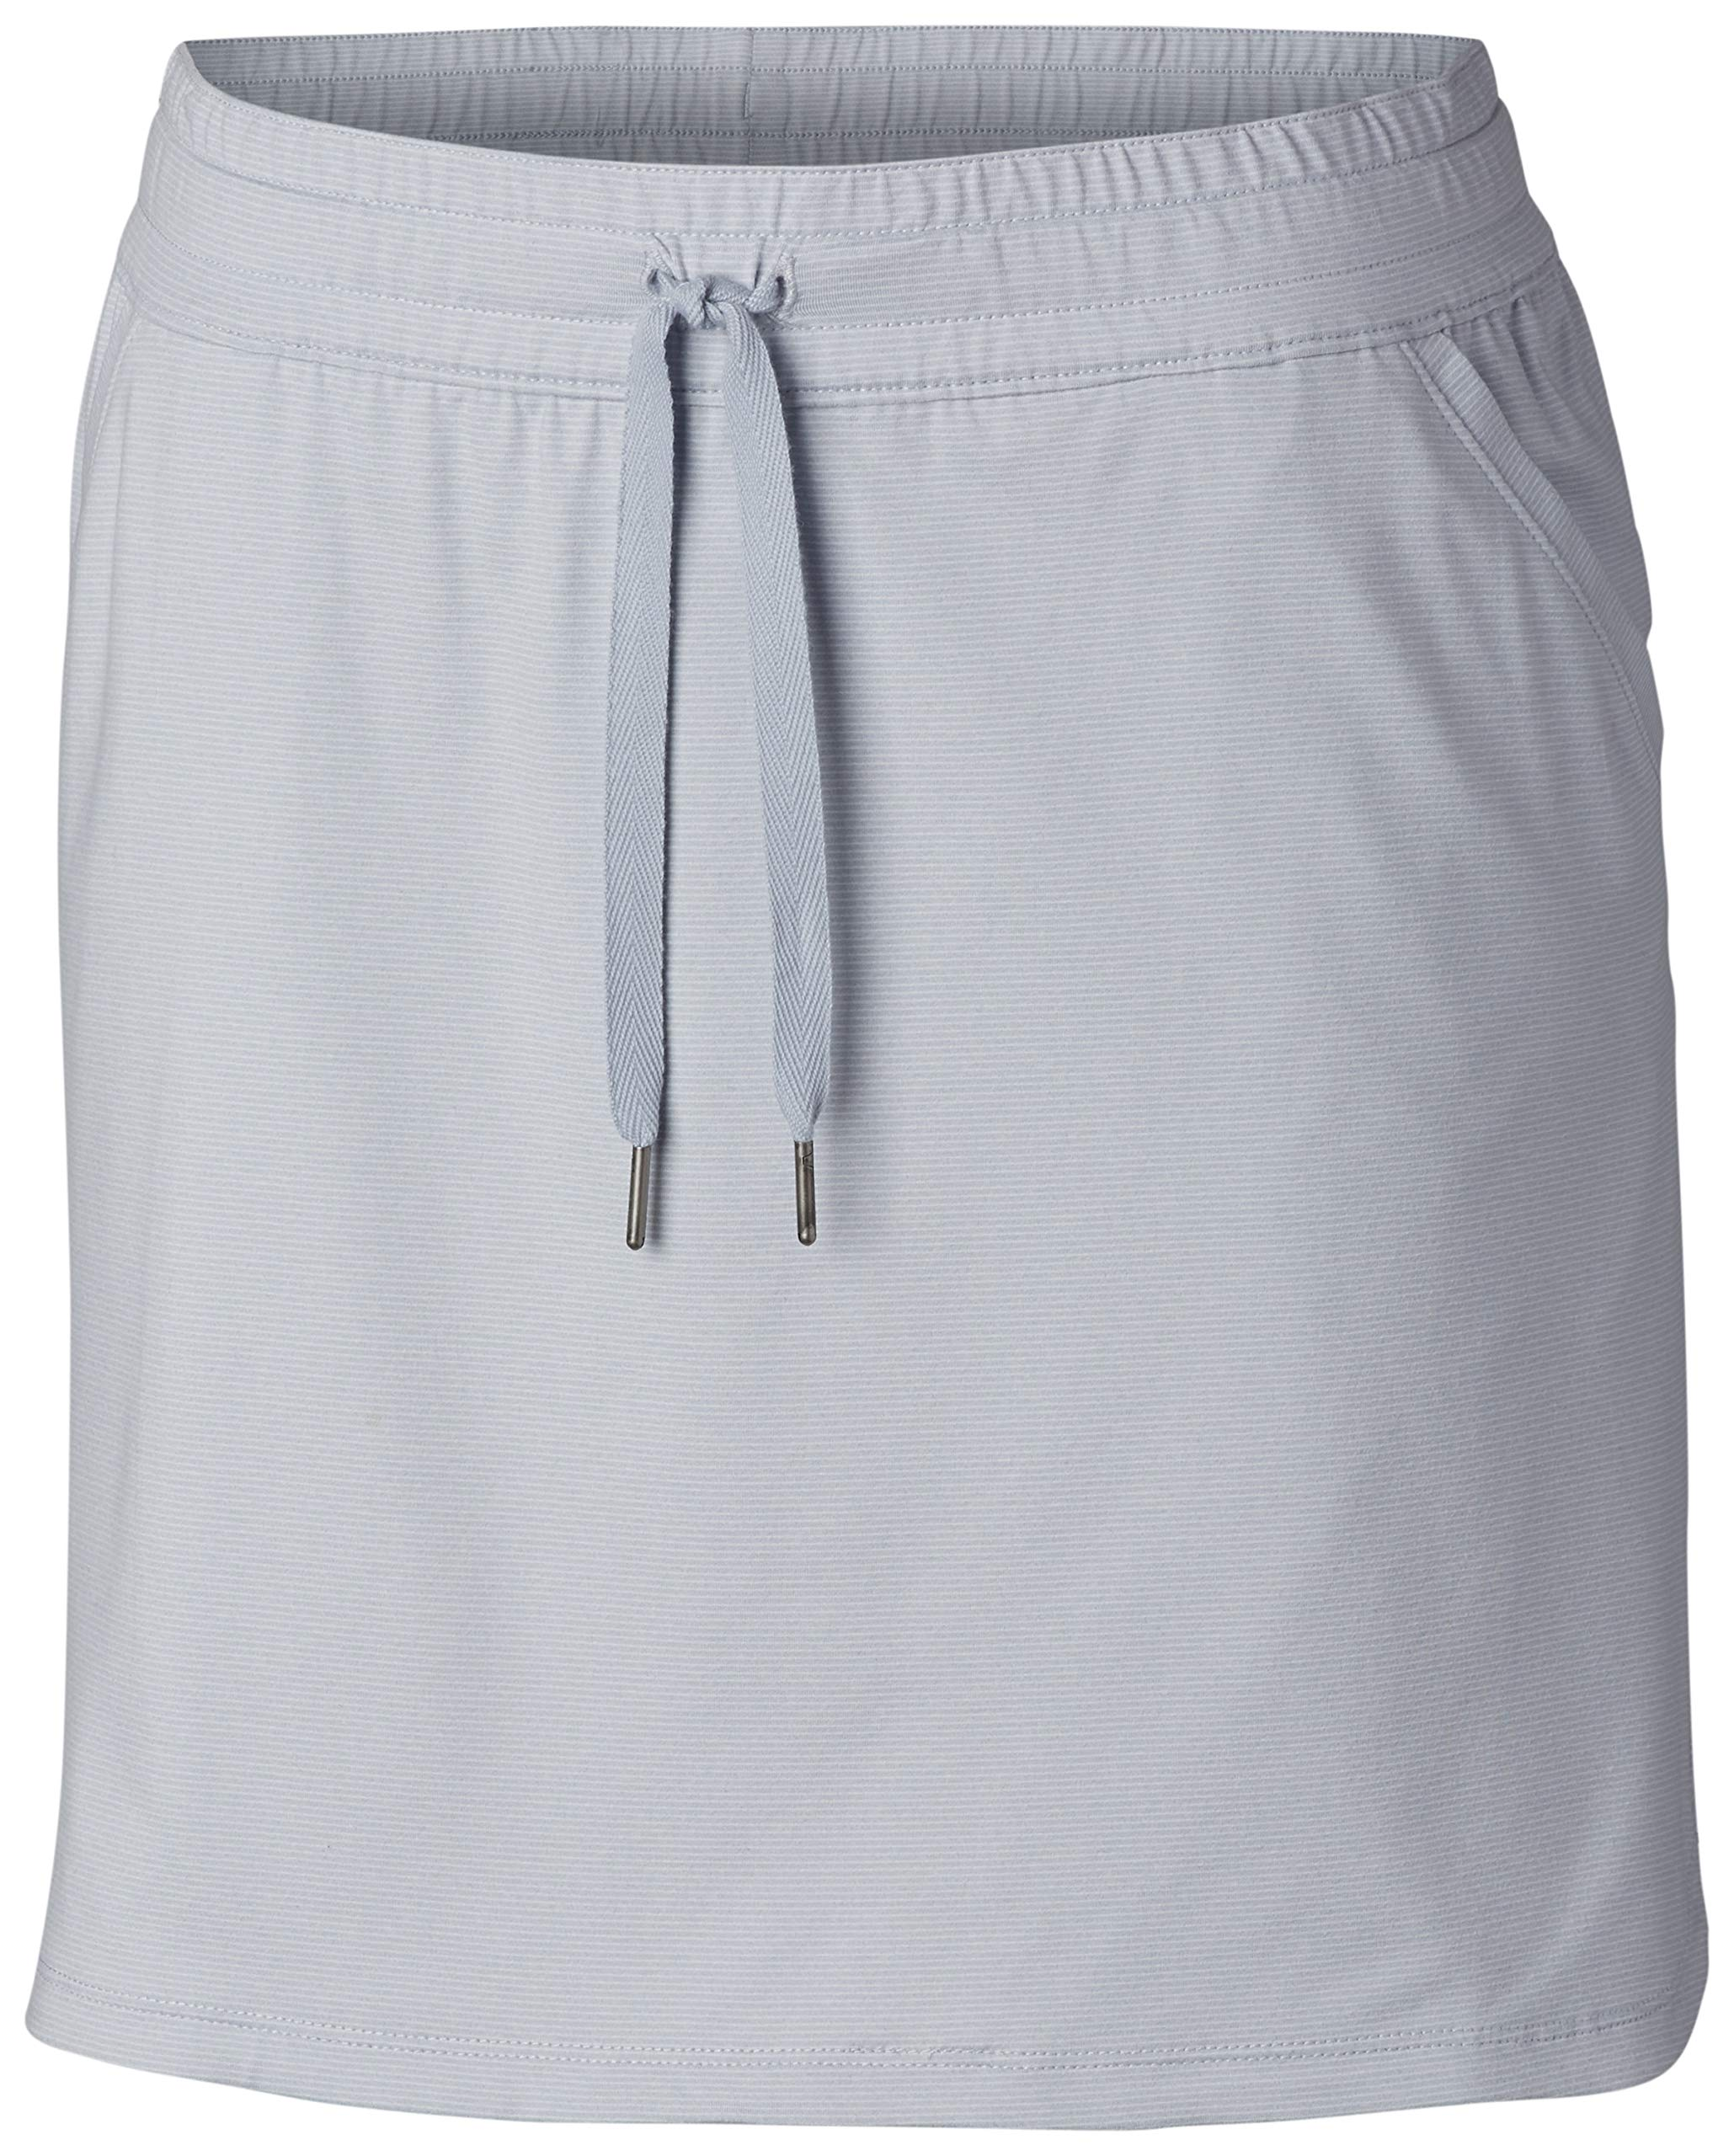 Columbia Women's Reel Relaxed Skirt, Cirrus Grey, X-Large by Columbia